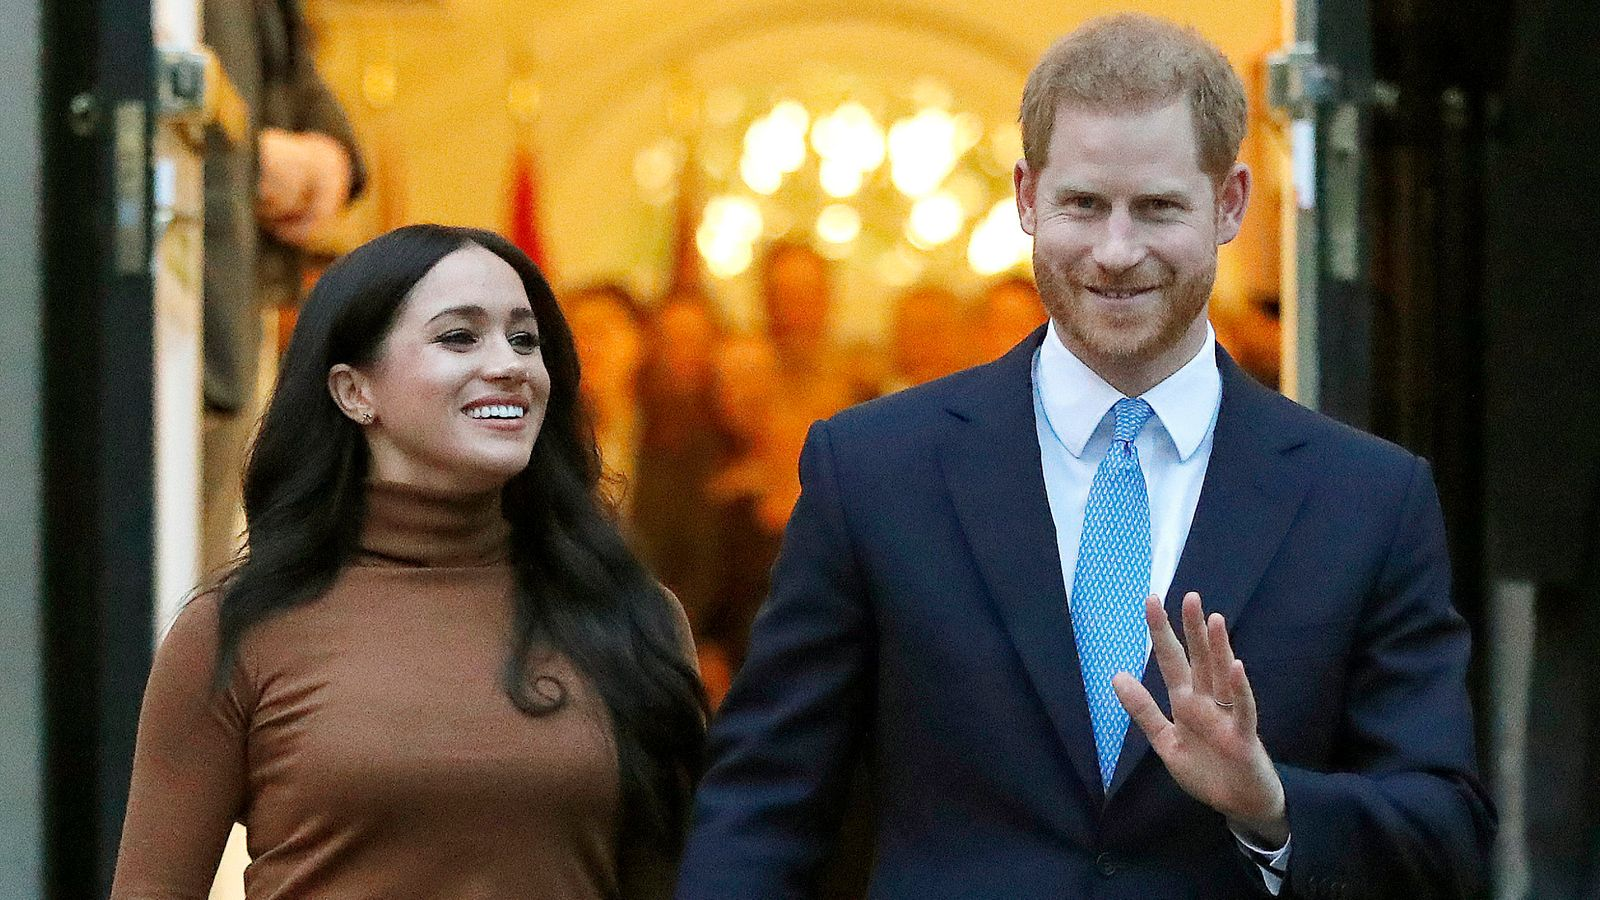 Prince Charles Gave 'Substantial Sum' To Harry And Meghan After Megxit, Report Reveals